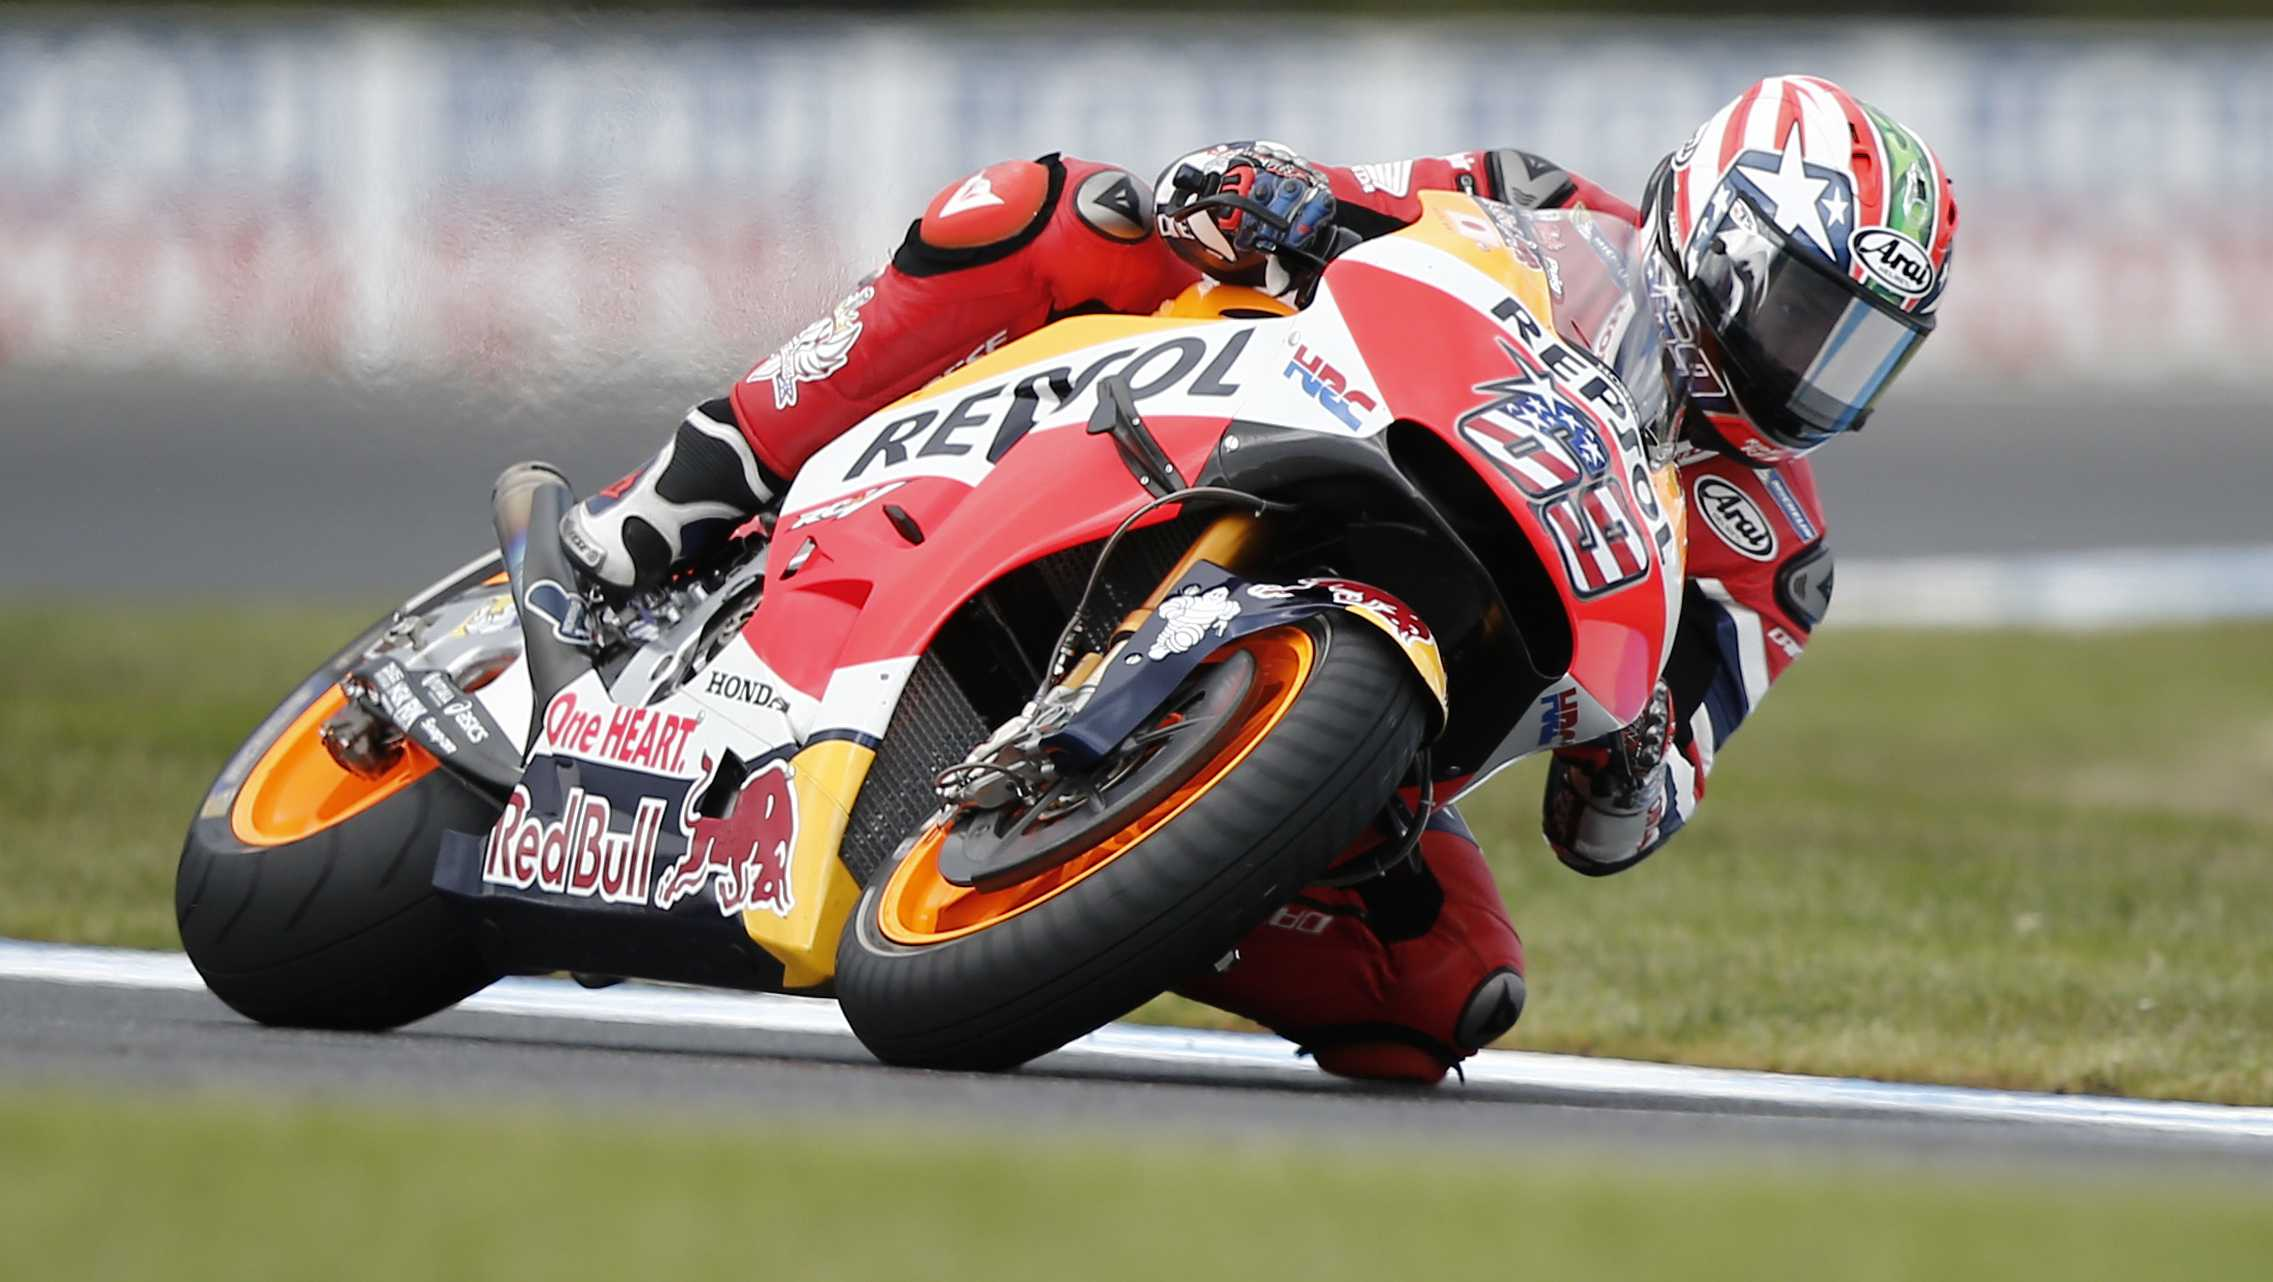 Honda MotoGP rider Nicky Hayden controls his bike on turn 11 during the free practice session number three of the Australian Motorcycle Grand Prix at Phillip Island, Australia, Saturday, Oct. 22, 2016.